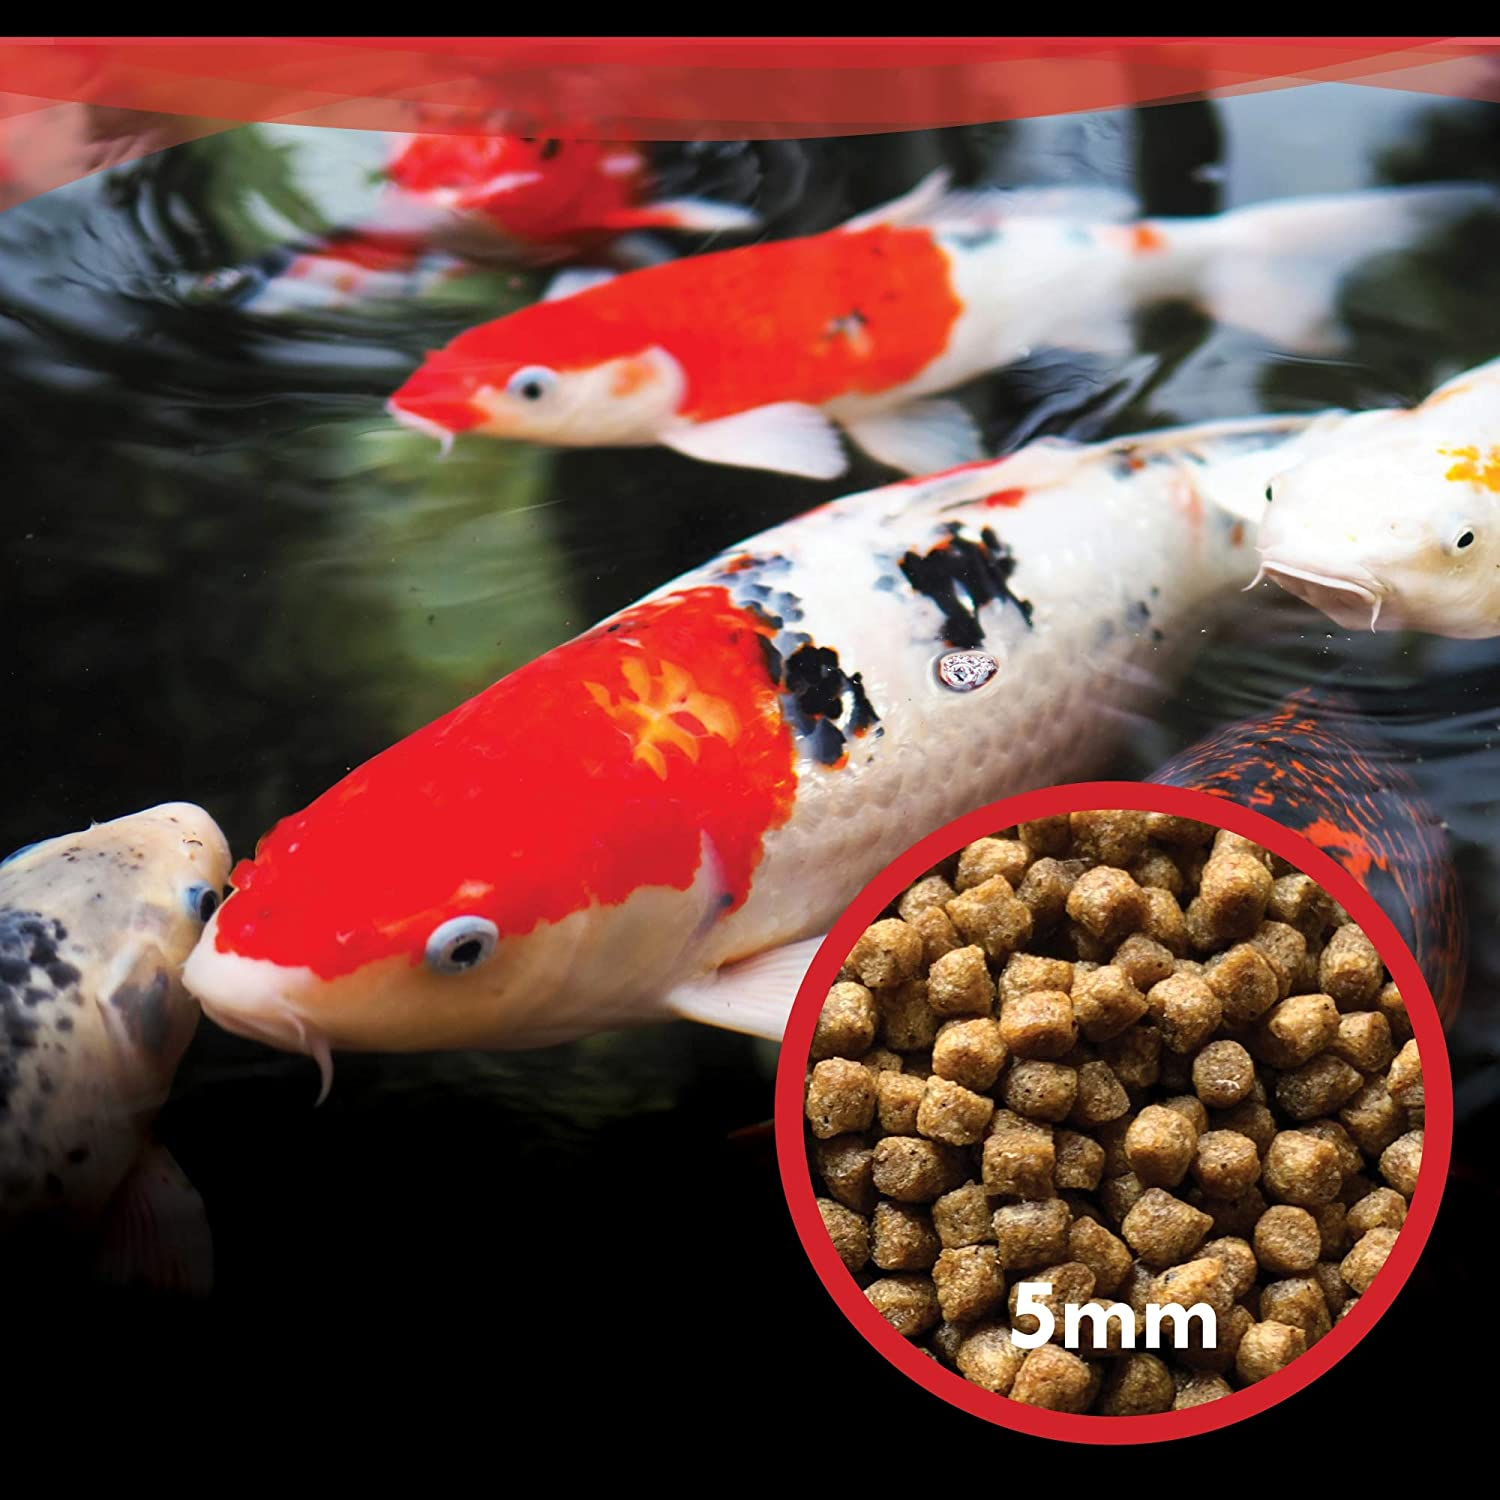 HALF OFF PONDS Show & Grow with Color Enhancing and Protein, Grow Pro with High-Protein Growth, and All Seasons Nourishing Koi and Goldfish Food Formulas